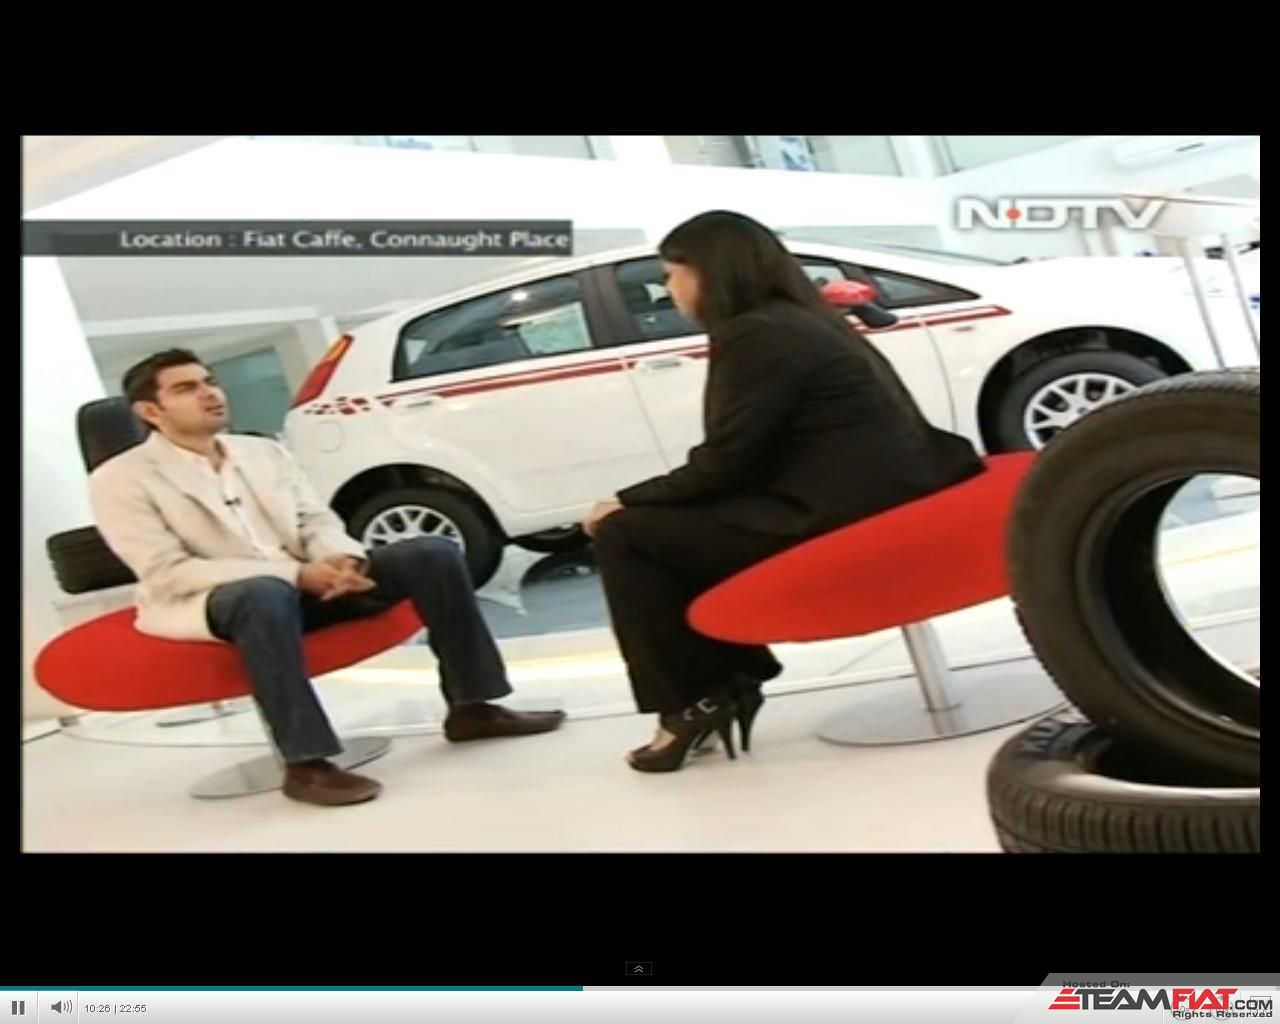 NDTV Show at Fiat Caffe.JPG